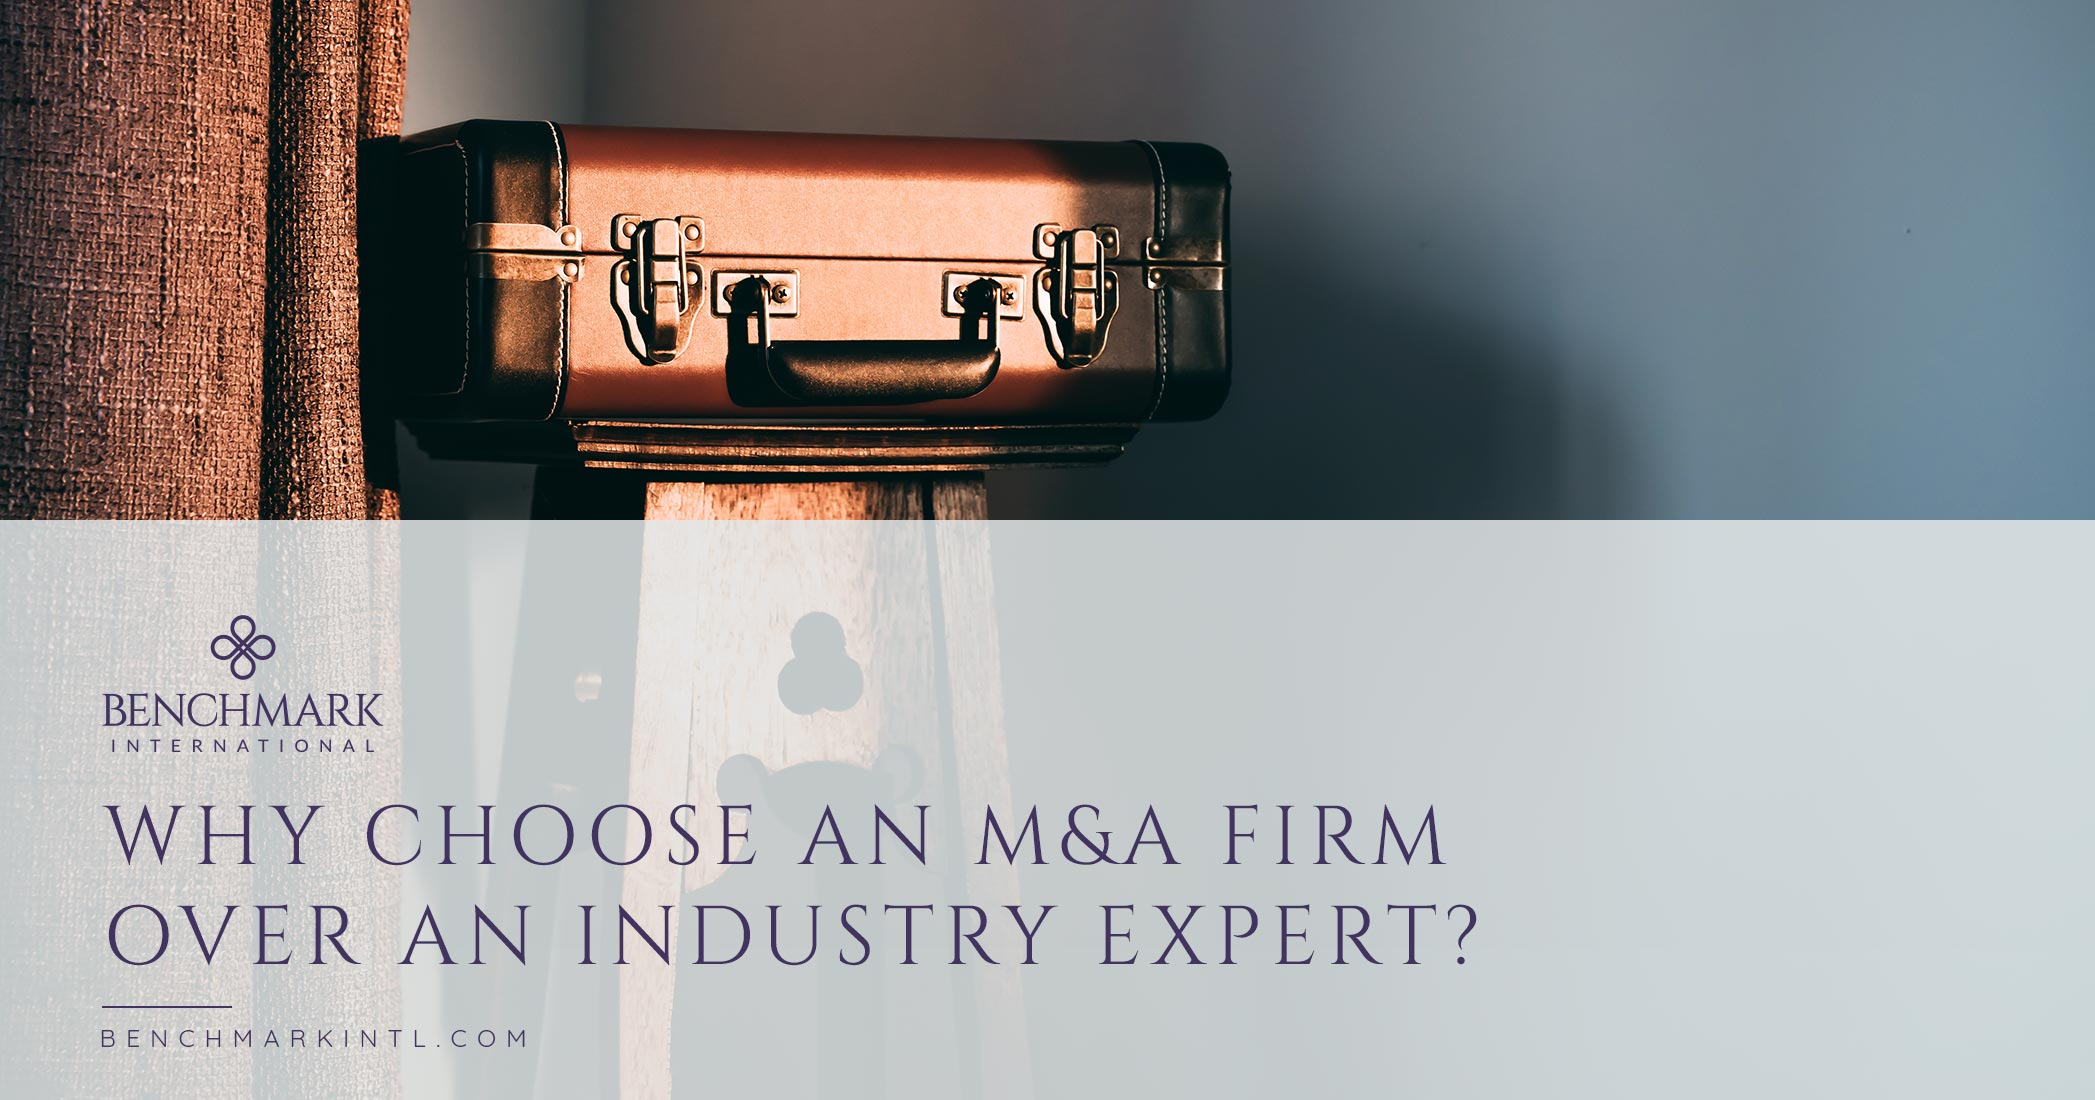 Why Choose An M&A Firm Over An Industry Expert?